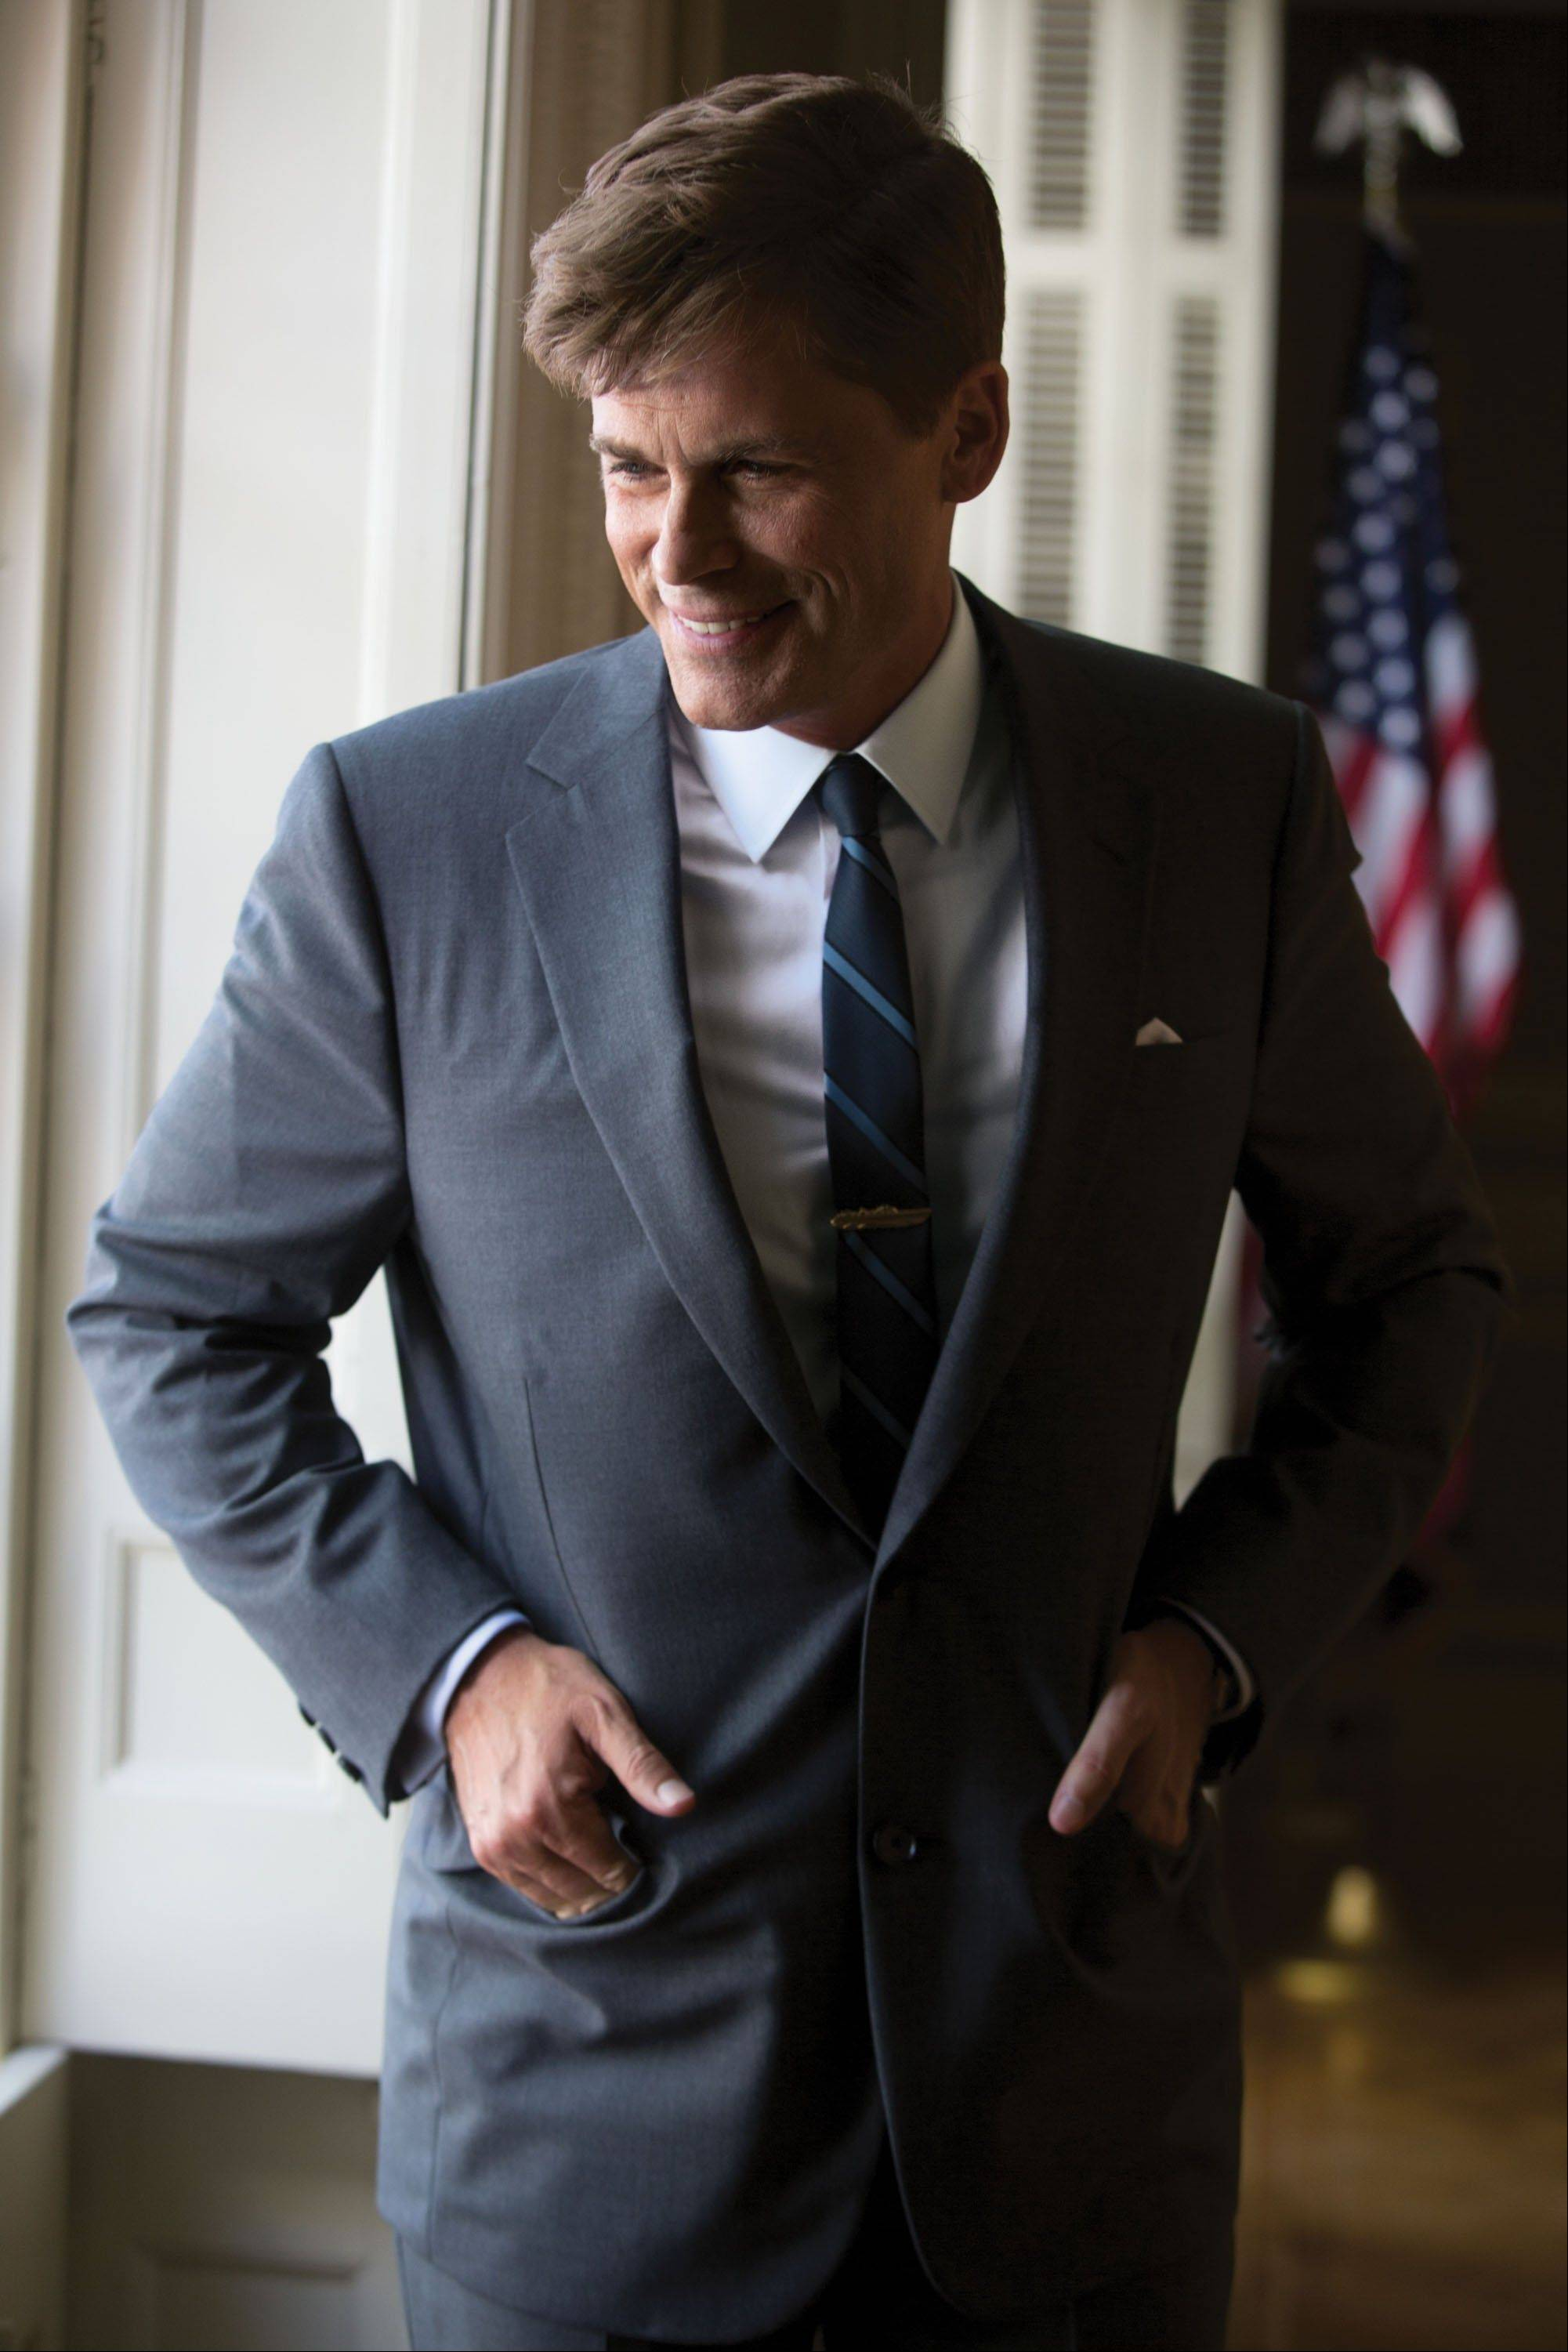 Rob Lowe portrays President John F. Kennedy in �Killing Kennedy,� which airs at 7 p.m. Sunday, Nov. 10, on National Geographic Channel.